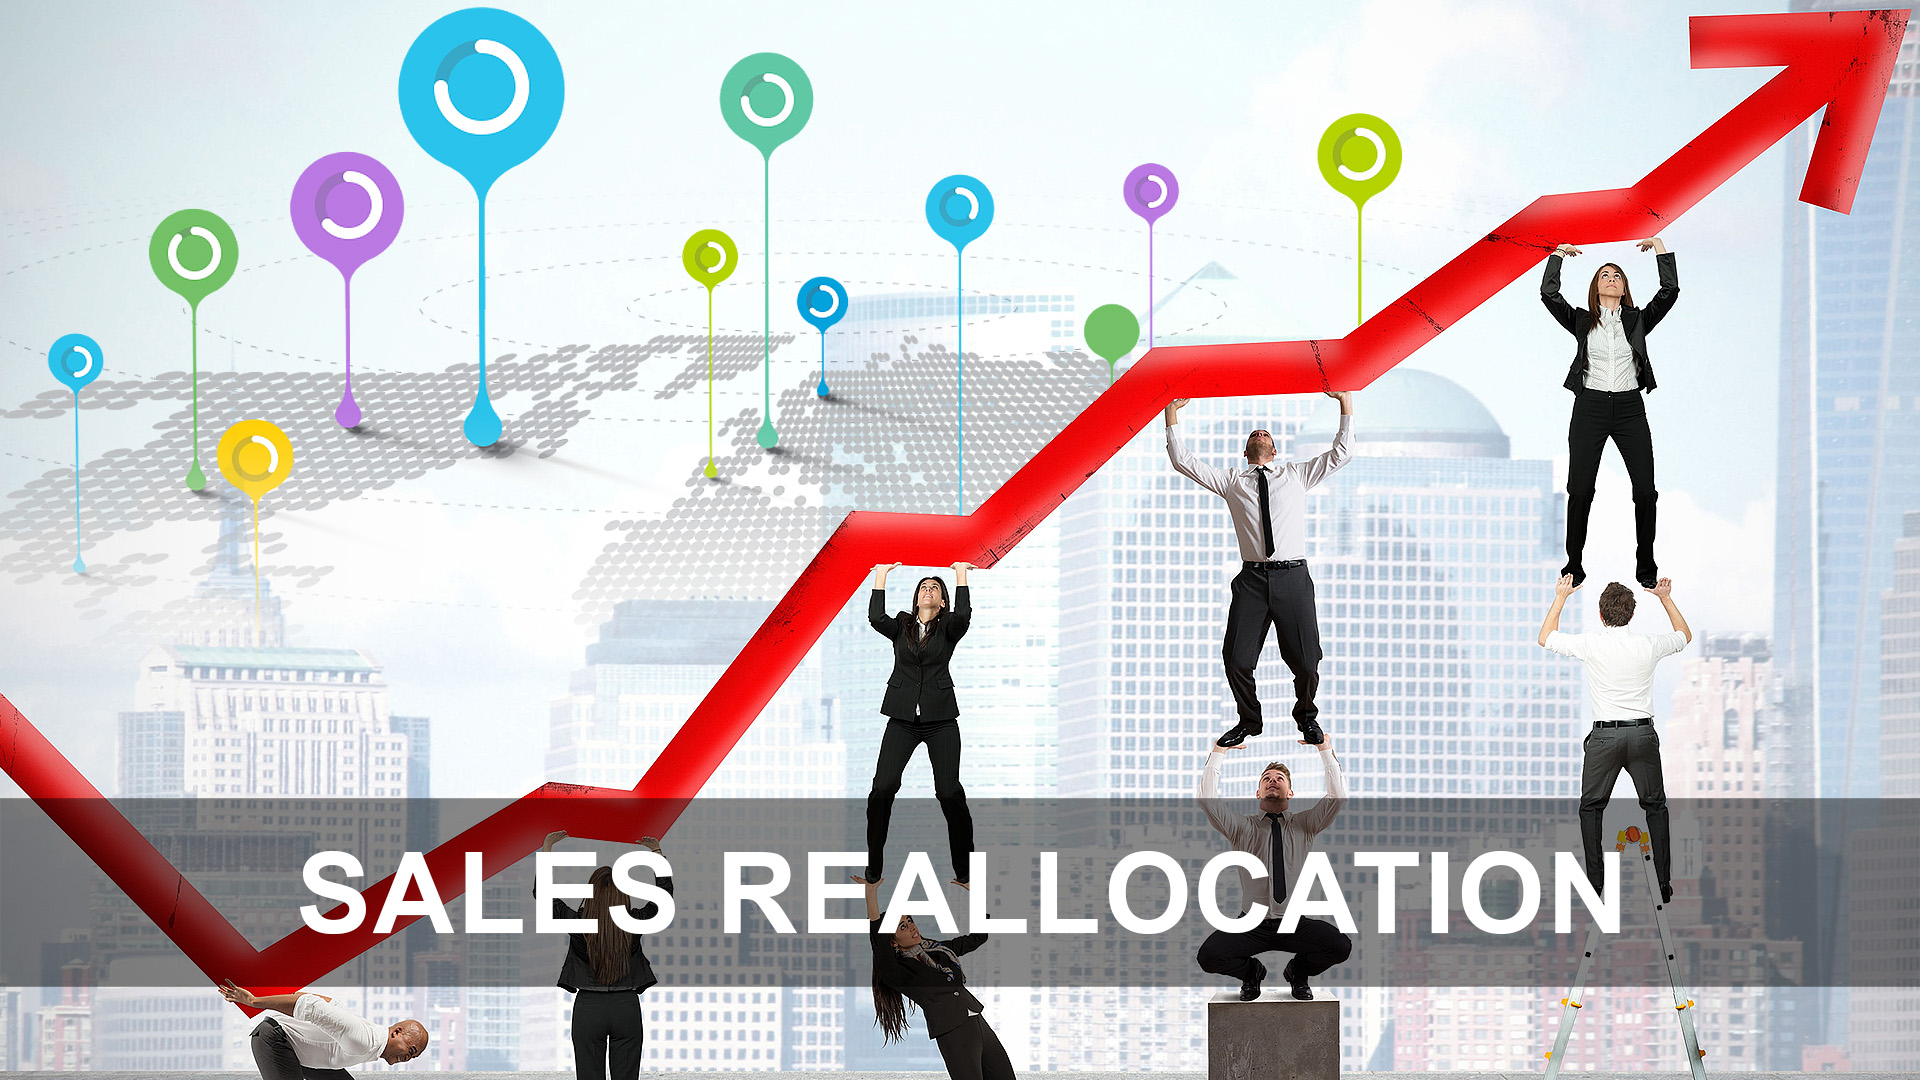 Sales Reallocation - KAM.jpg